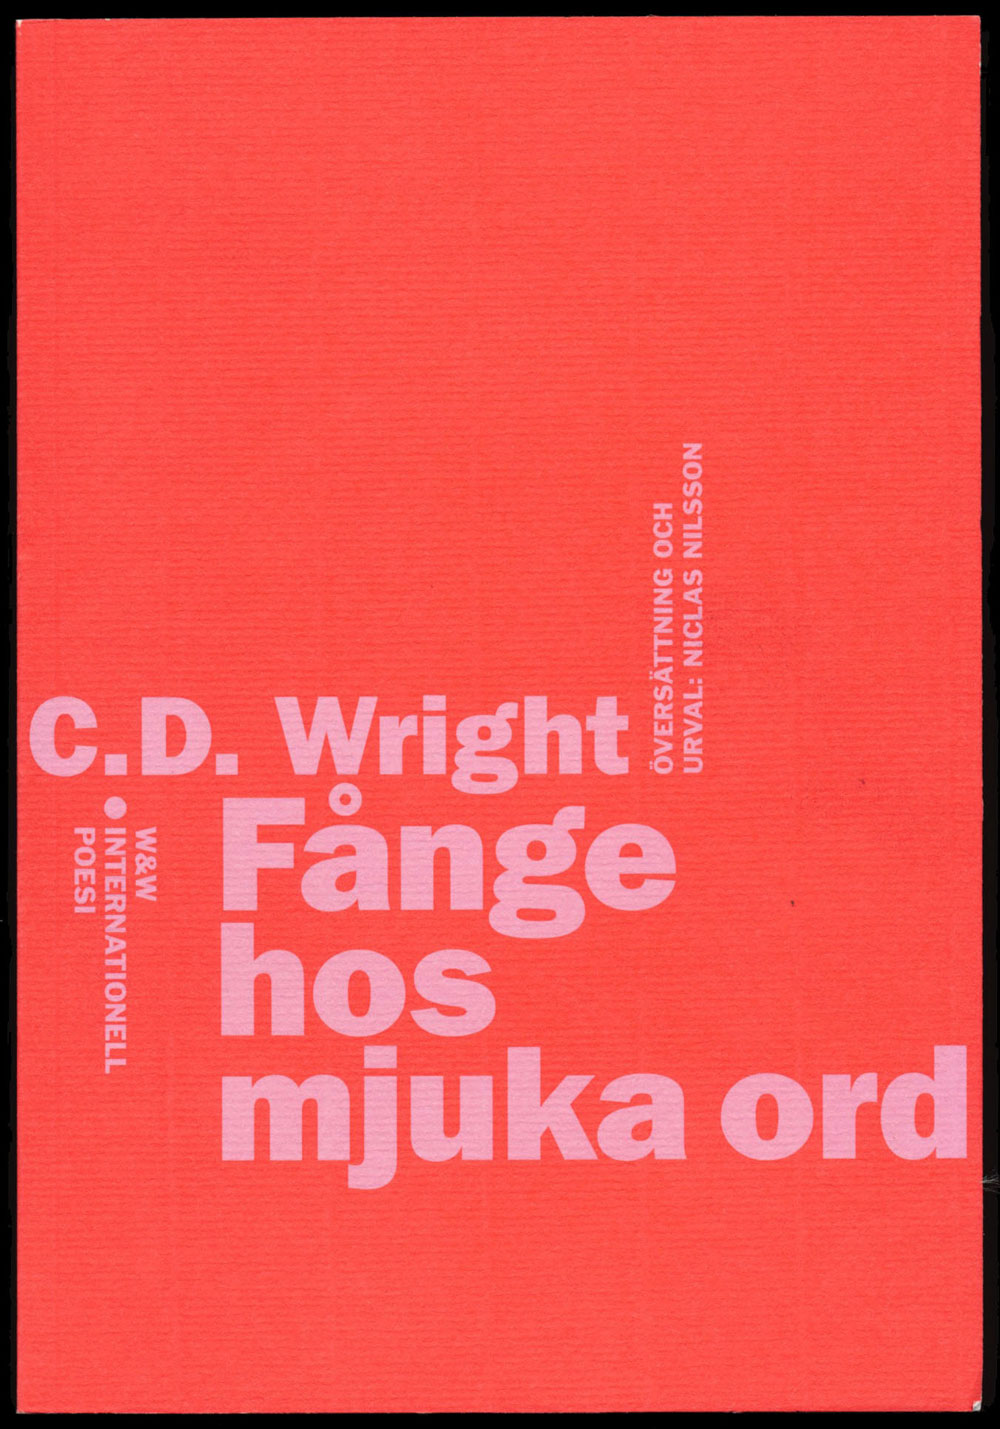 C.D. Wright Fånge hos mjuka ord Wahlström & Widstrands serie med internationell poesi